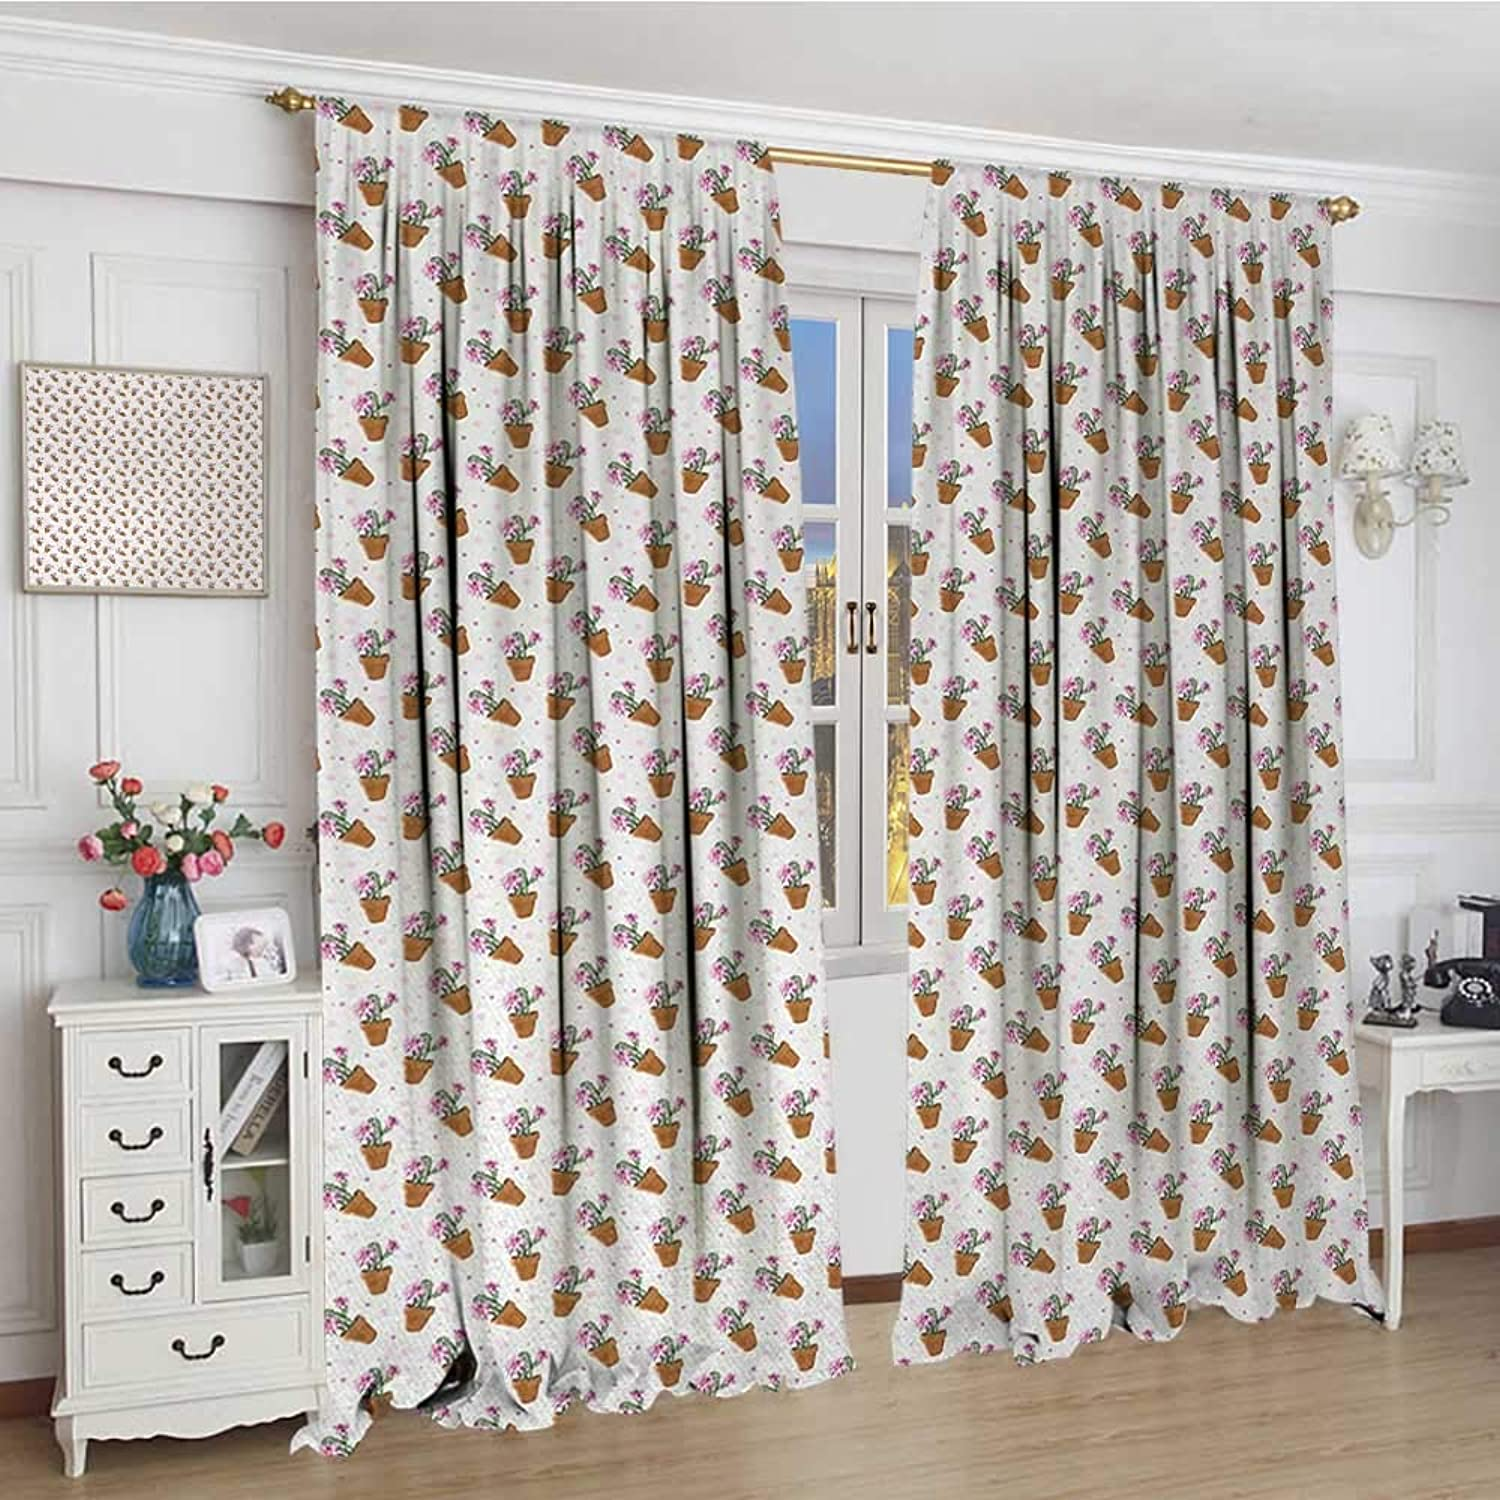 Smallbeefly Succulent Room Darkening Wide Curtains Exotic Cactus Plants with Pink Blossoms and Little Dots in Flower Pots Drapes for Living Room 108 x84  Green Pink Pale Brown